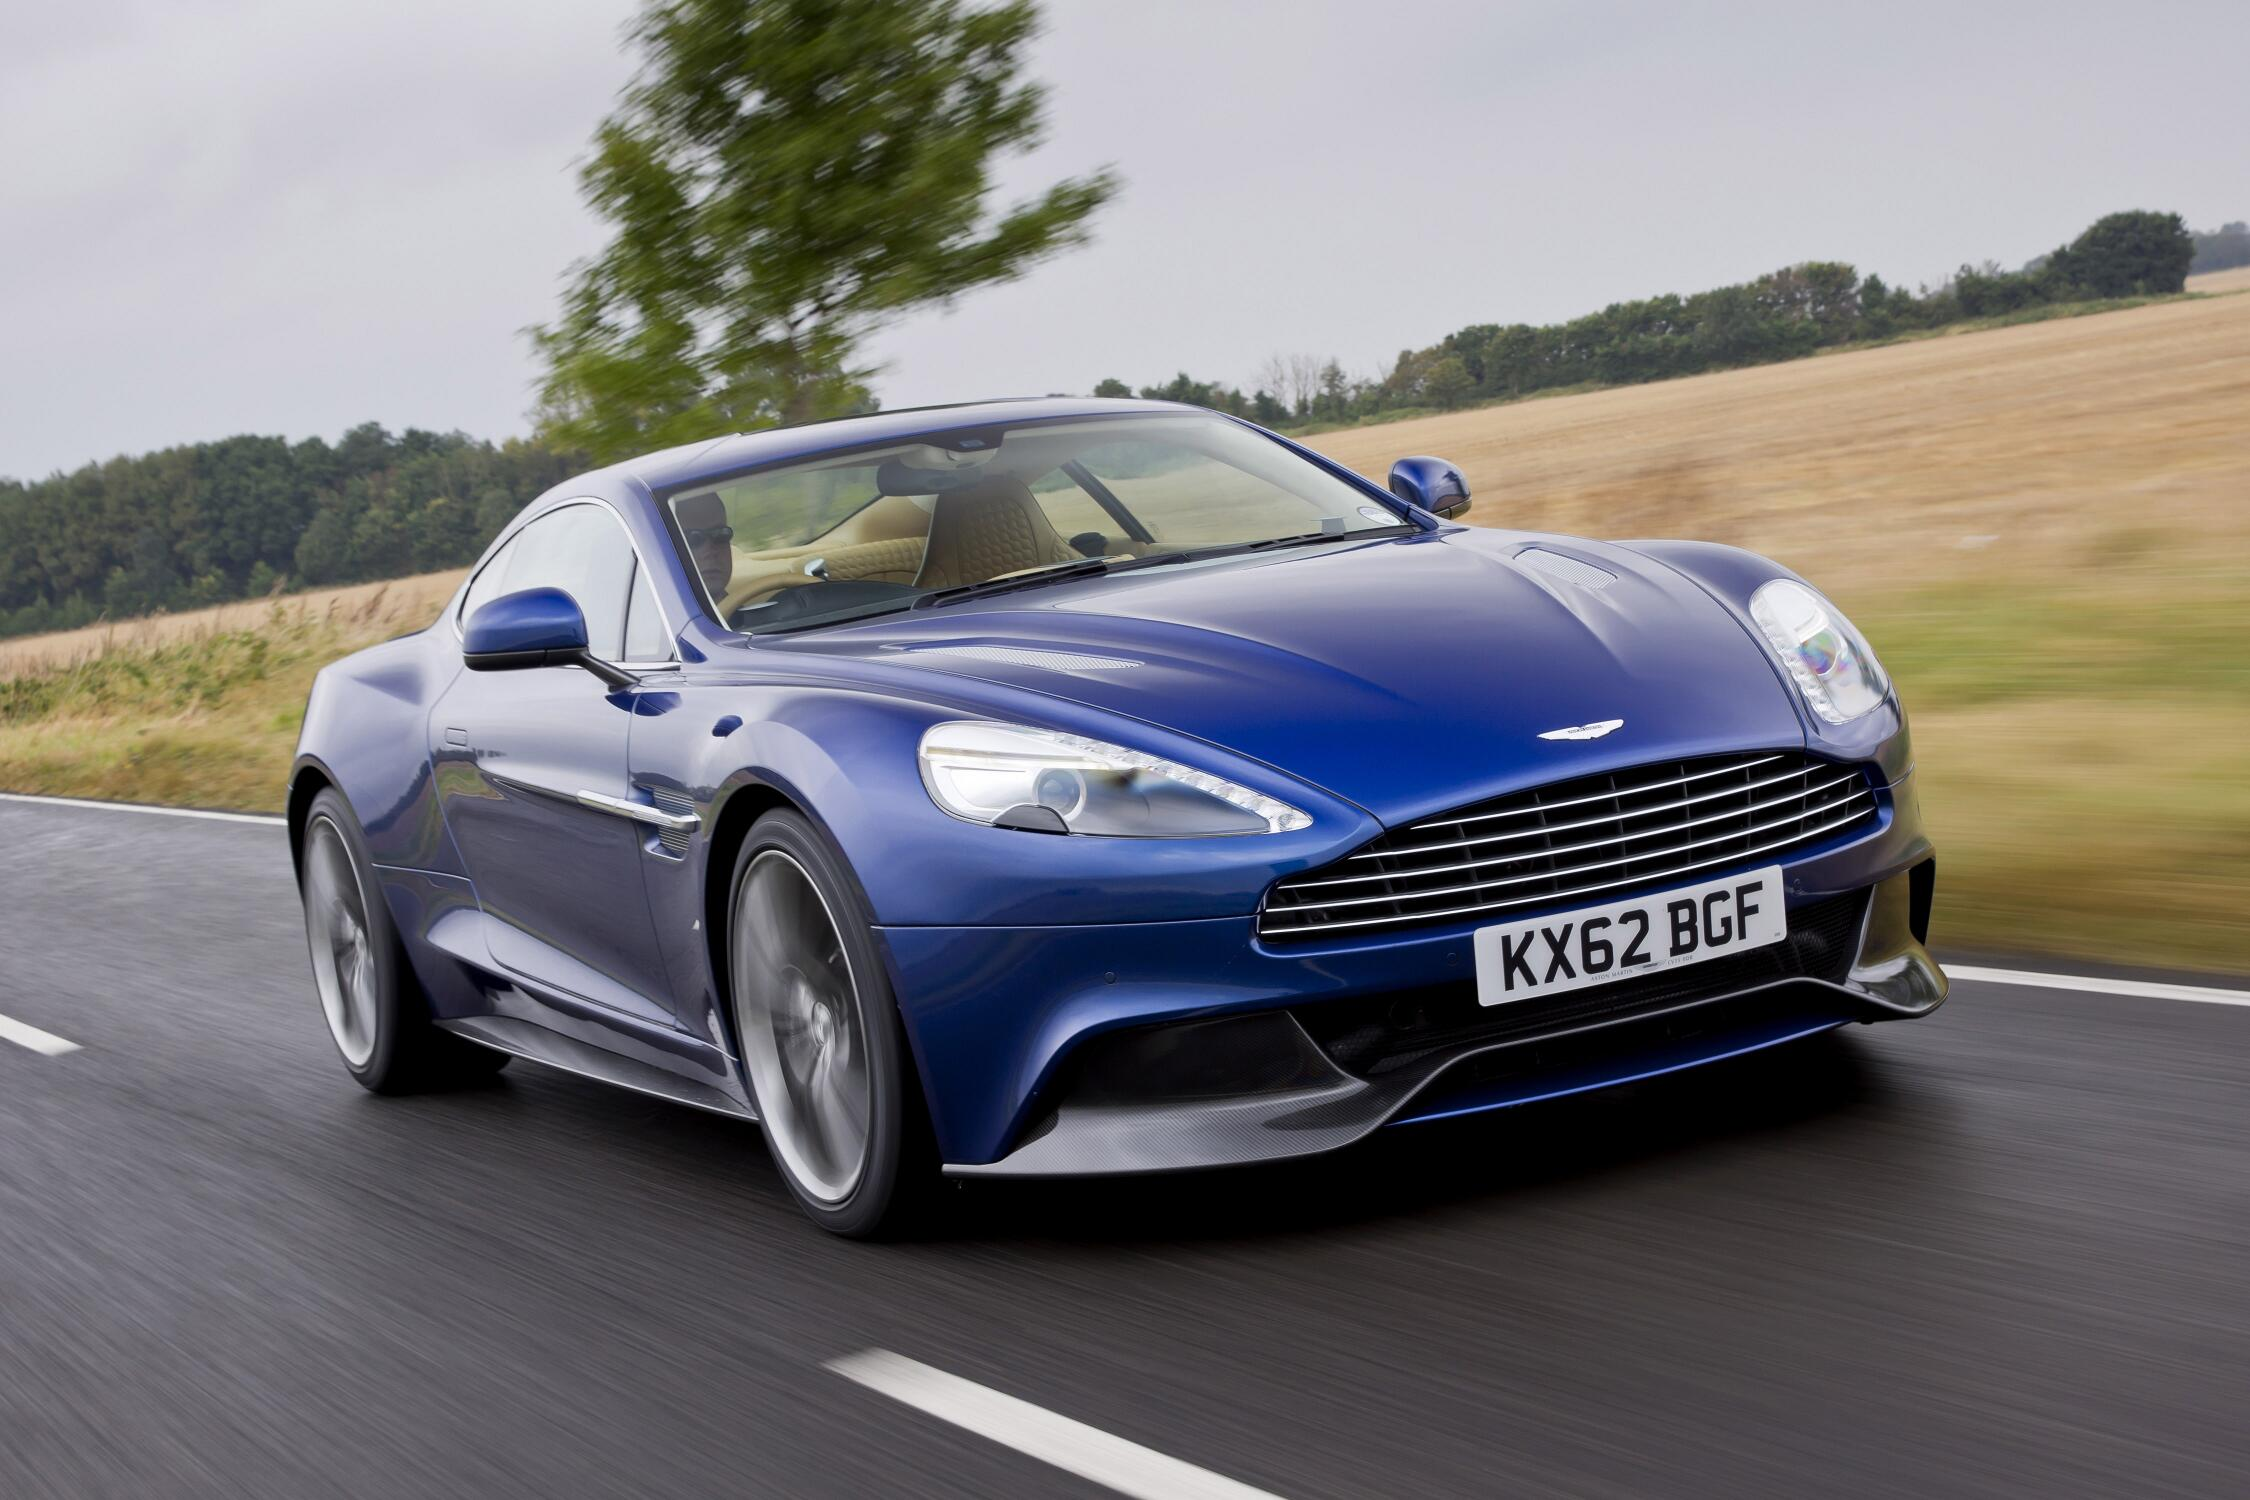 aston martin research paper The aston martin v8 vantage is great for sun lovers and luxury shoppers cars com has the features of every v8 vantage model year -- see if it's right for you.